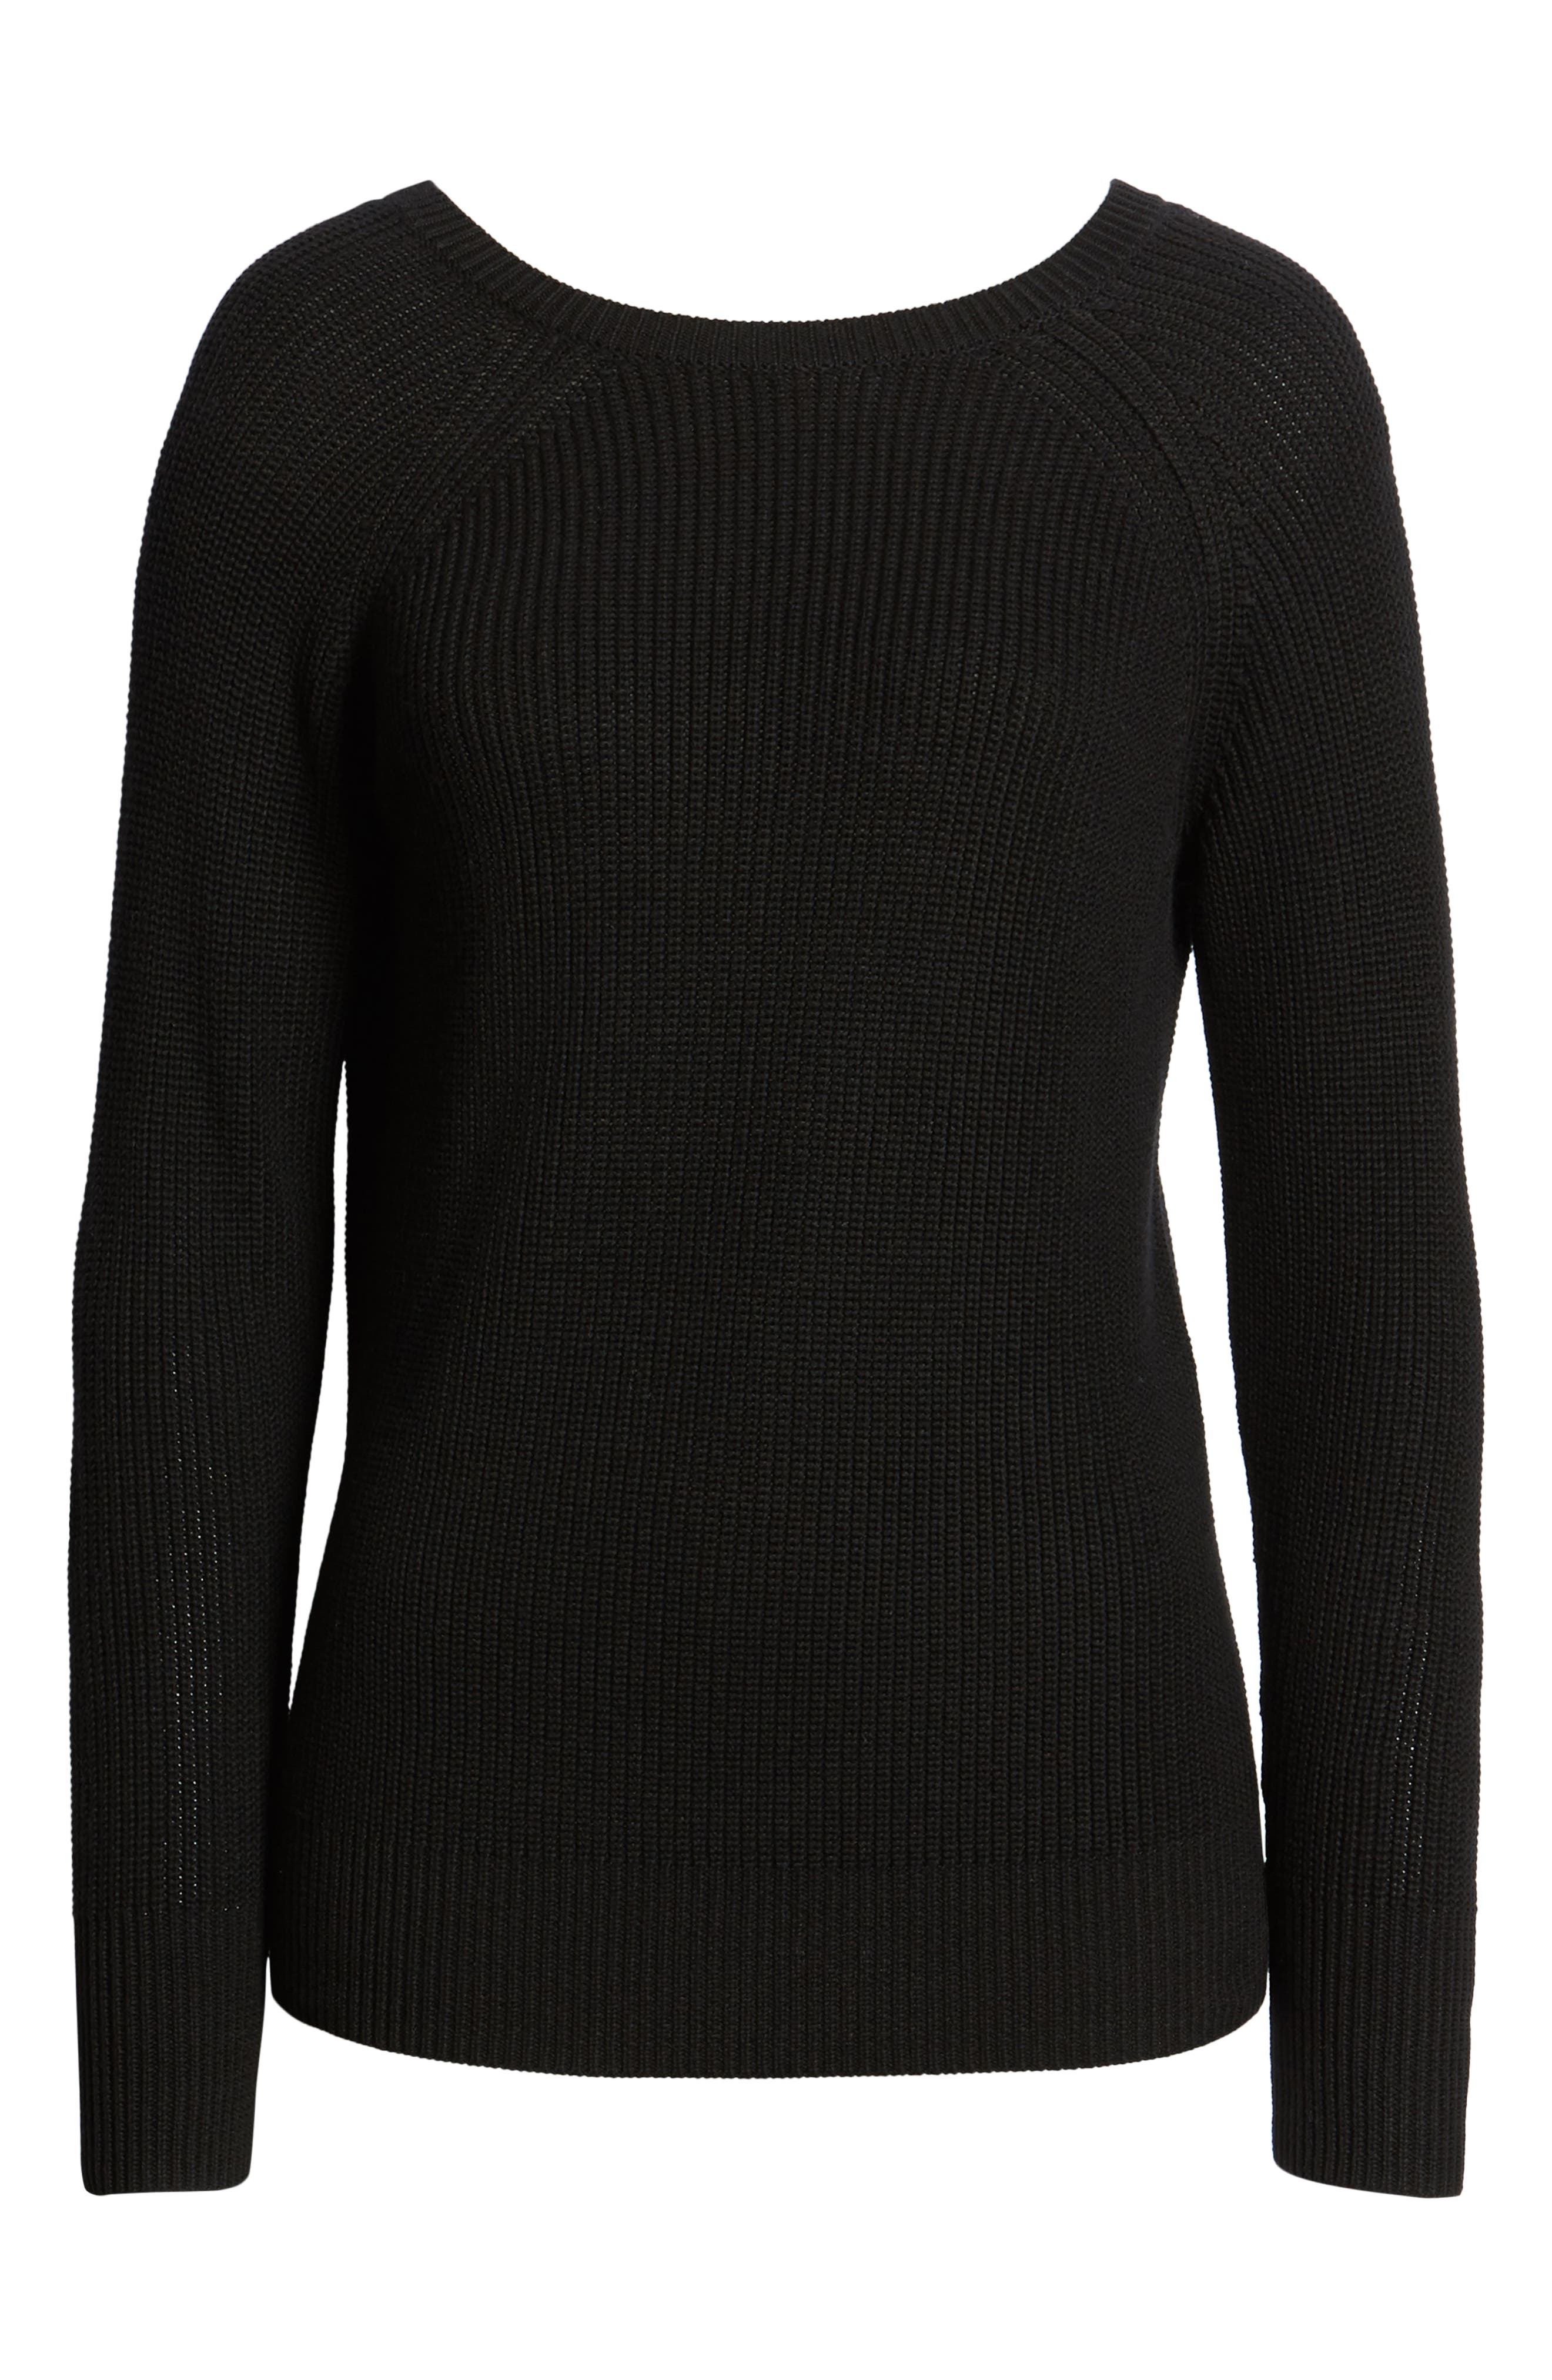 HALOGEN<SUP>®</SUP>, Cross Back Sweater, Alternate thumbnail 6, color, BLACK